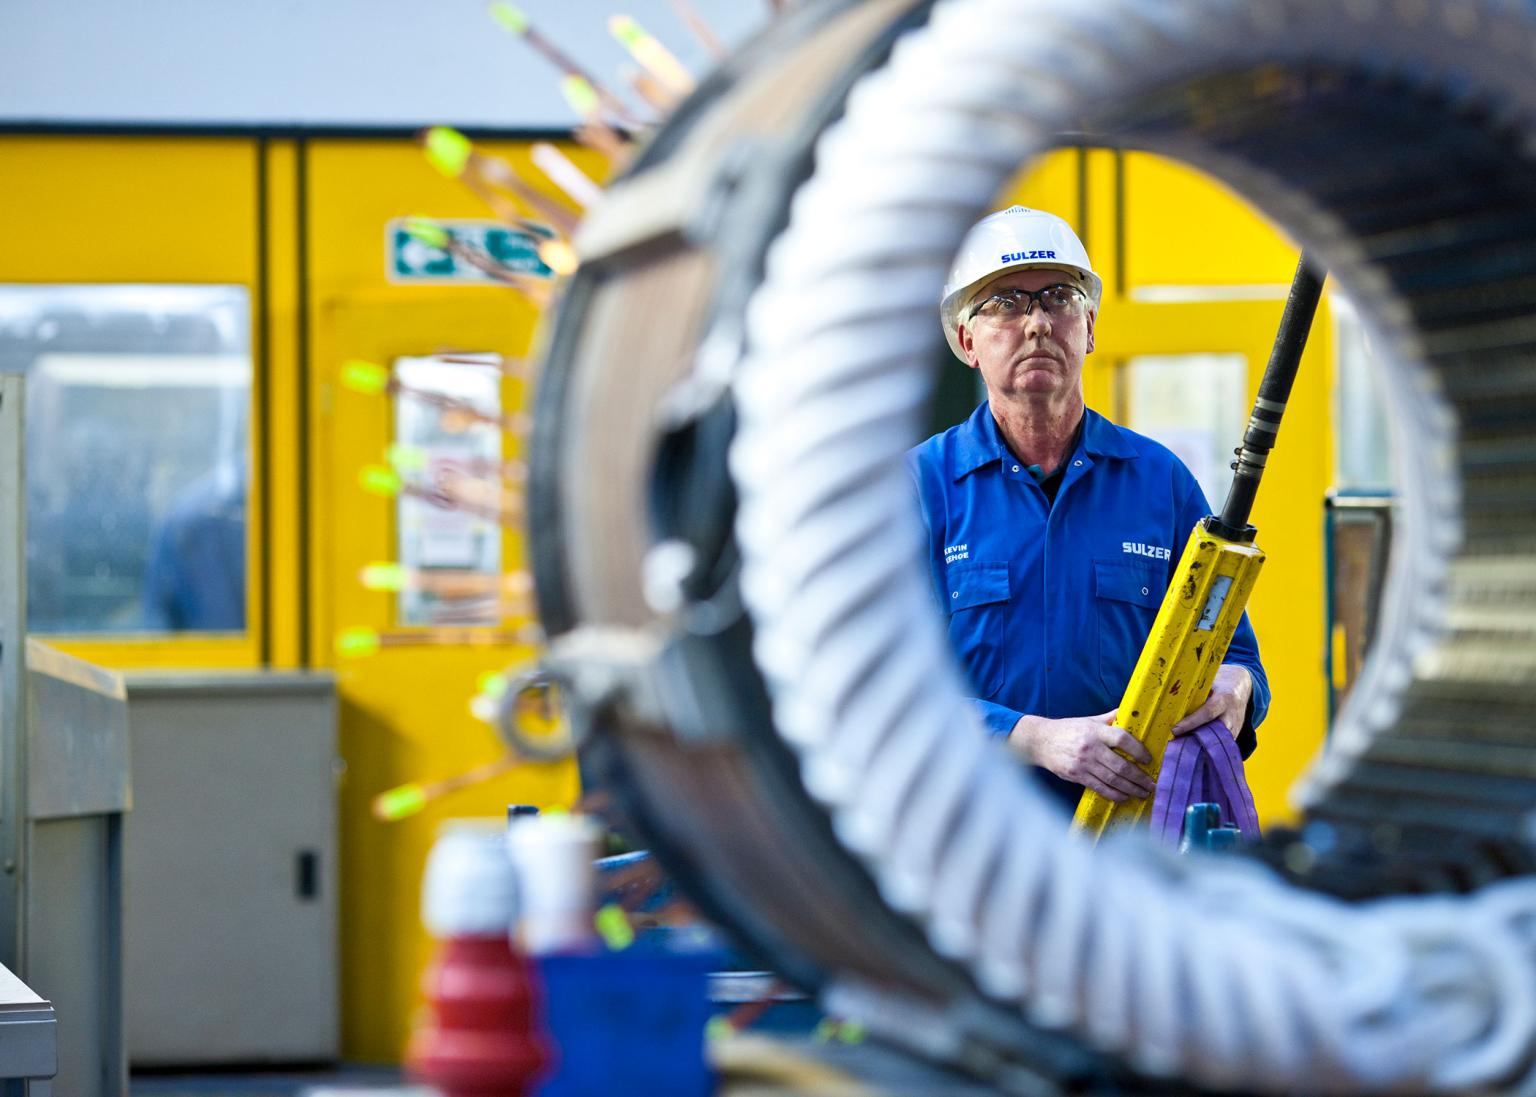 Sulzer offers a specialist on-site wind turbine repair service